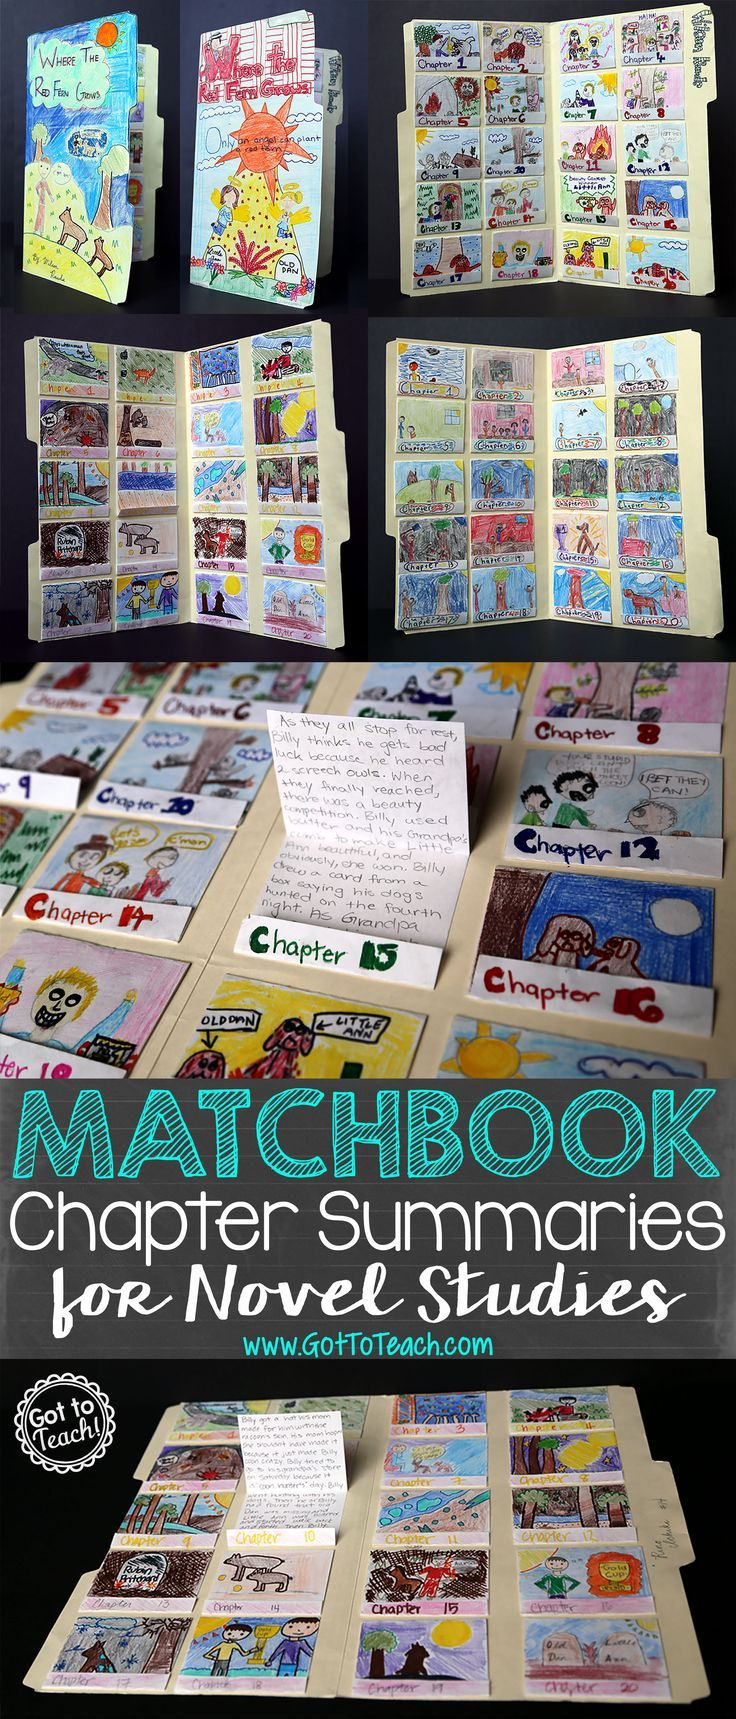 Matchbook Chapter Summaries for Novel Studies. This project is so simple, and you can do it with any novel. This example is for Where the Red Fern Grows.